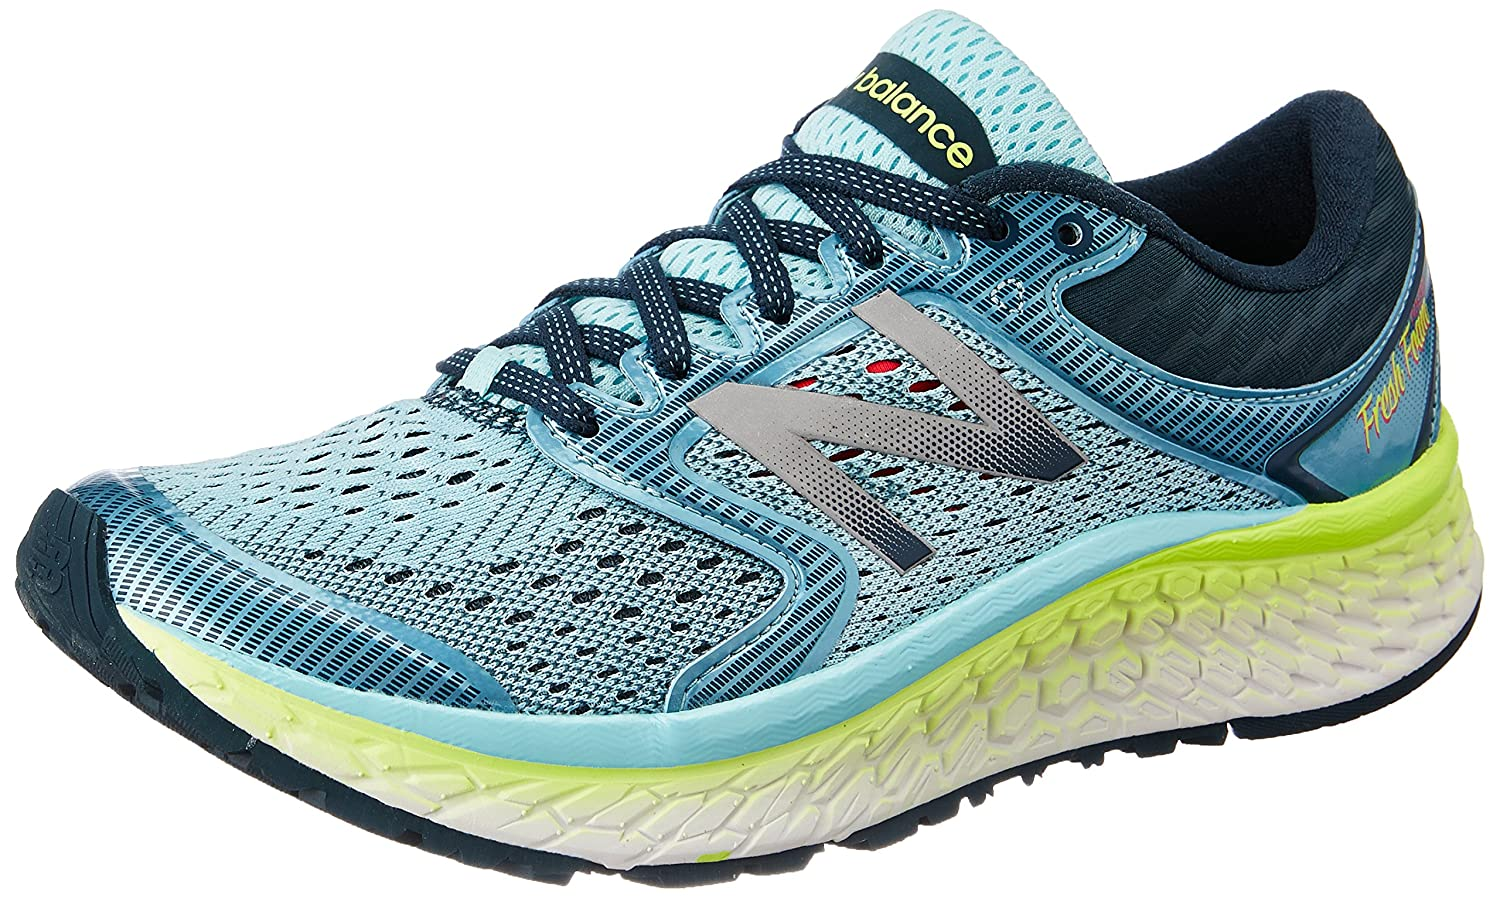 New Balance Women's Fresh Foam 1080v7 Running Shoe B01FSIX5A0 9 B(M) US|Ozone Blue Glow/Lime Glow